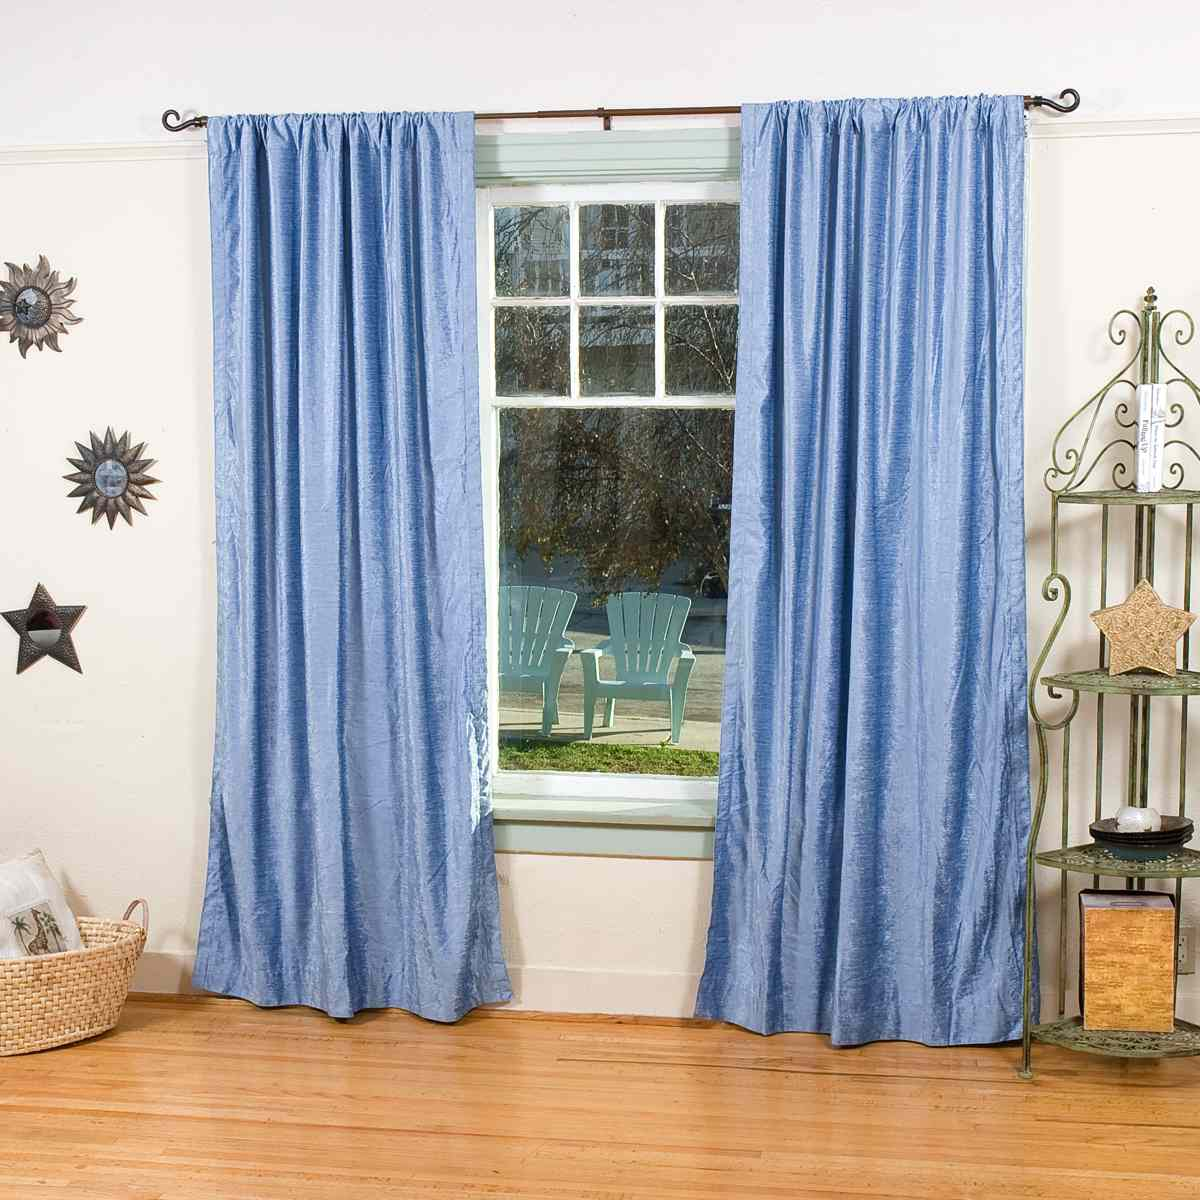 Caribbean Blue Velvet Curtains Drapes Panels 43 X 84